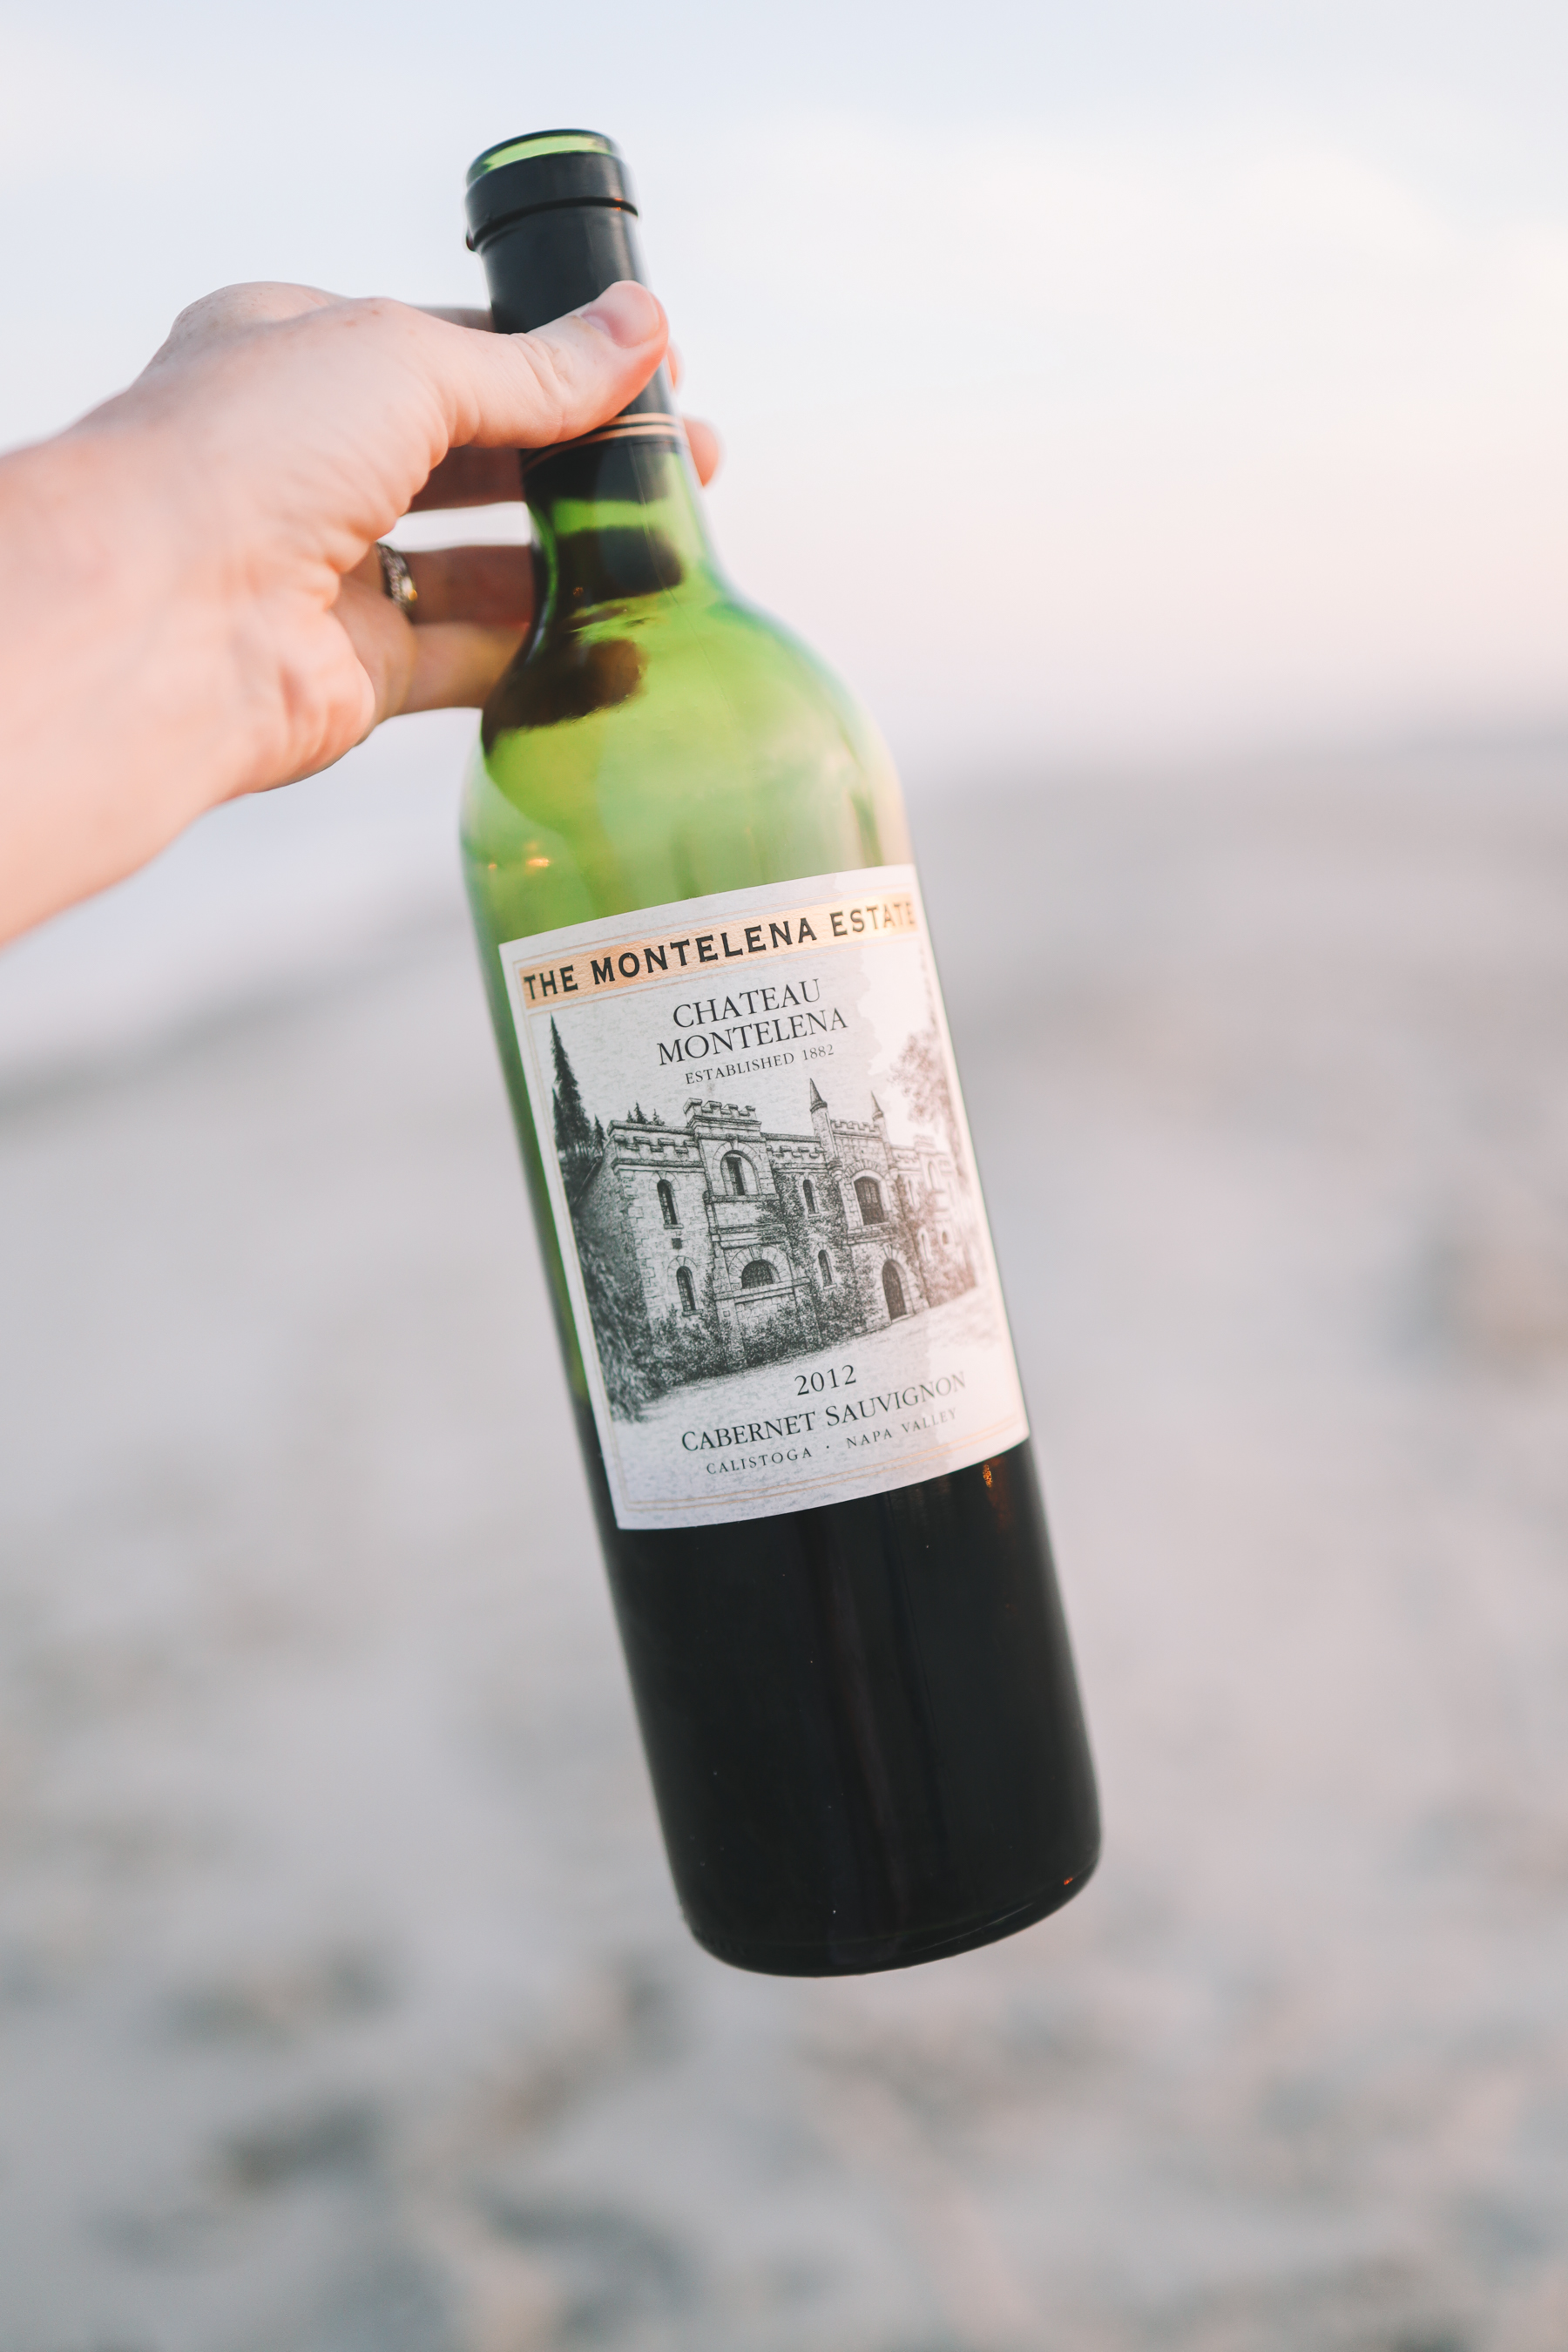 A bottle of wine on the Jersey beach